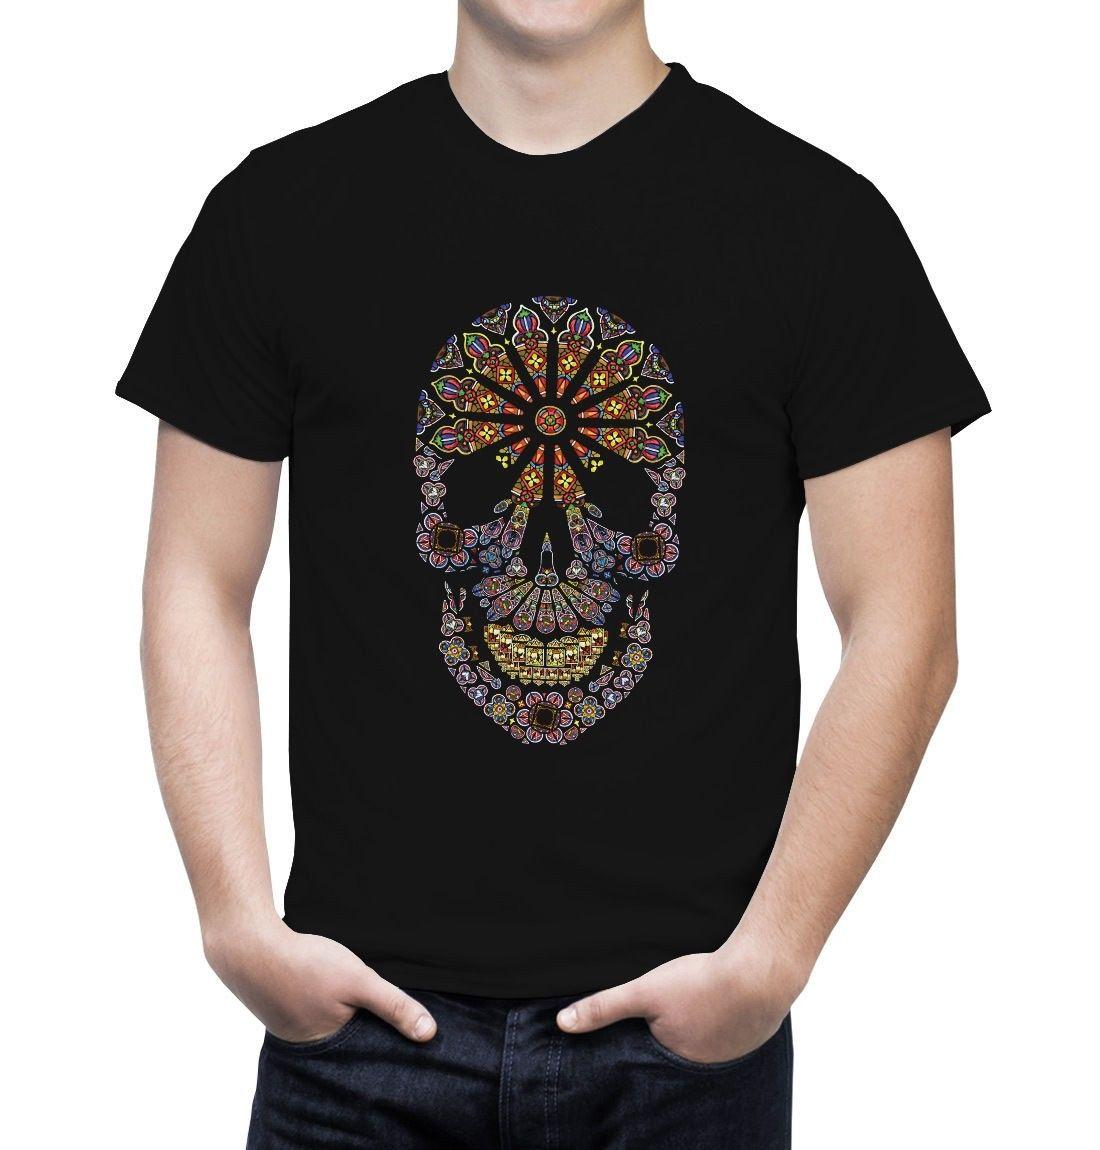 e0f12ee1 Stained Glass Skull Tshirt Day Of The Dead Mexican Skull Sugar Skull  Hipster O Neck Cool Tops Hip Hop Short Sleeve Designer White T Shirt  Printed T Shirts ...